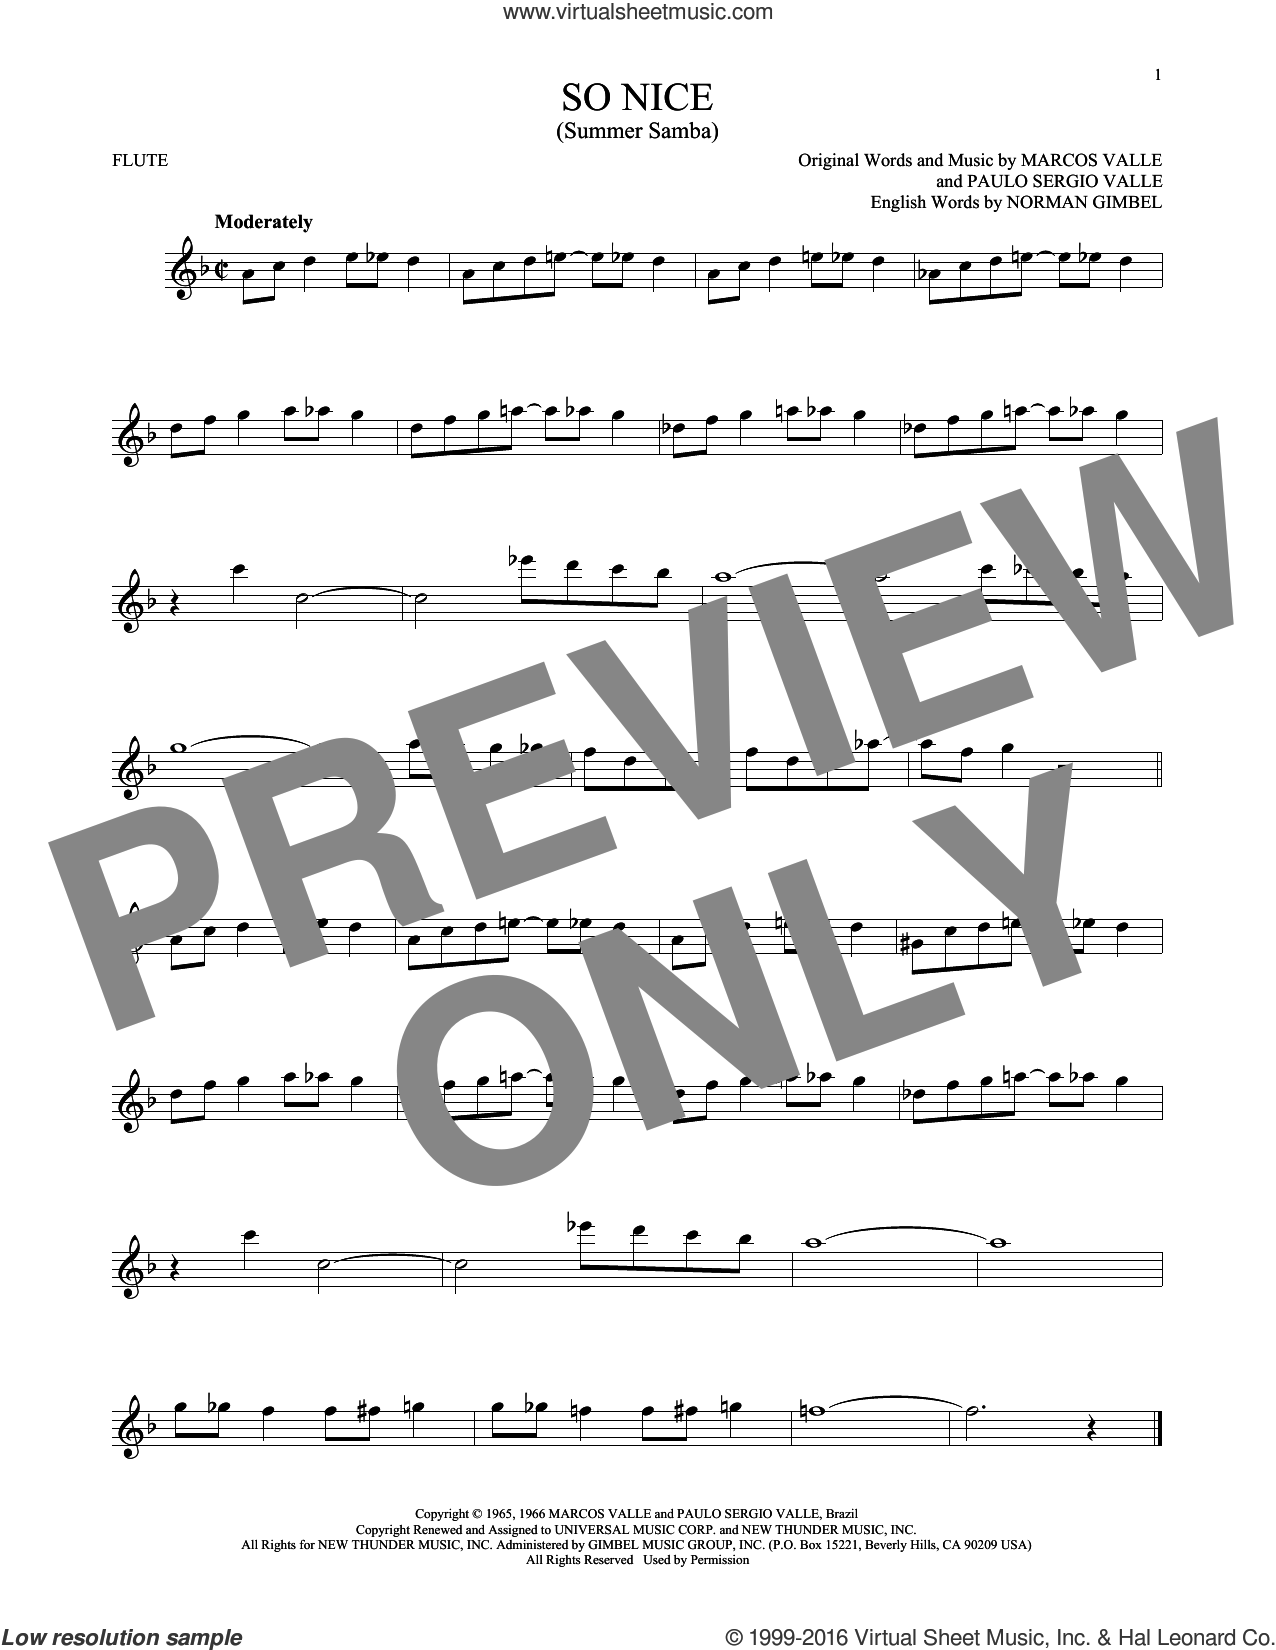 So Nice (Summer Samba) sheet music for flute solo by Norman Gimbel, Walter Wanderley, Marcos Valle and Paulo Sergio Valle, intermediate flute. Score Image Preview.